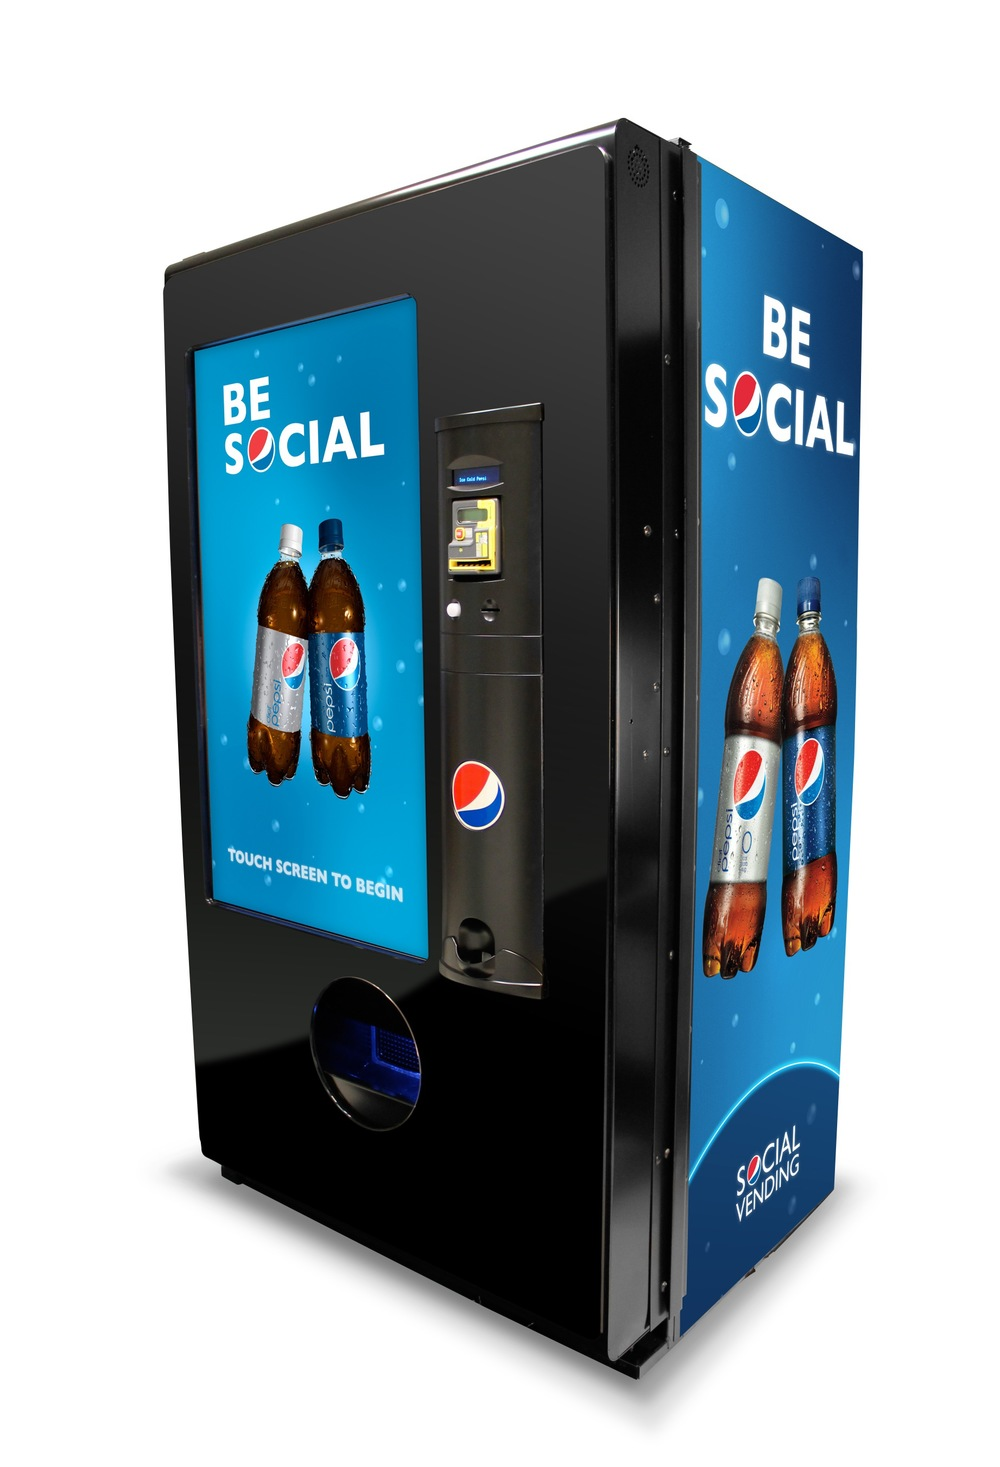 pepsi_social-vendingmachine_final